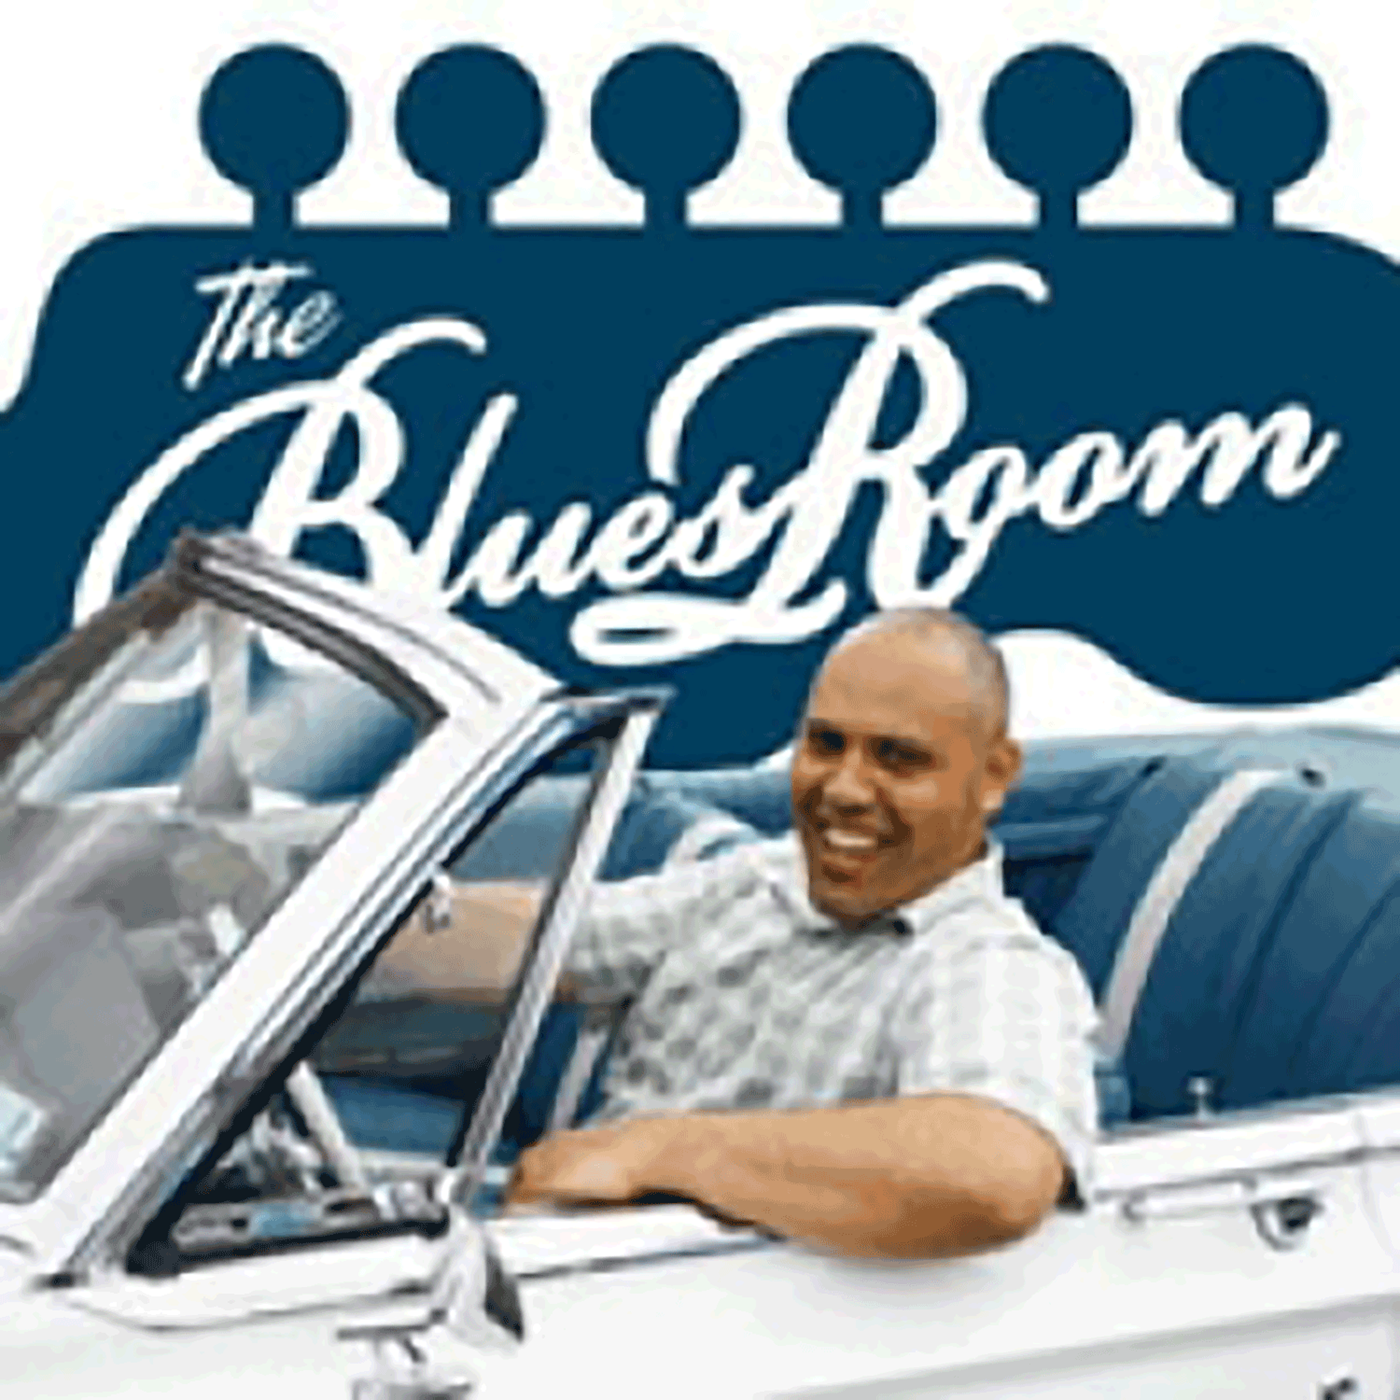 The Blues Room - 18-09-2019